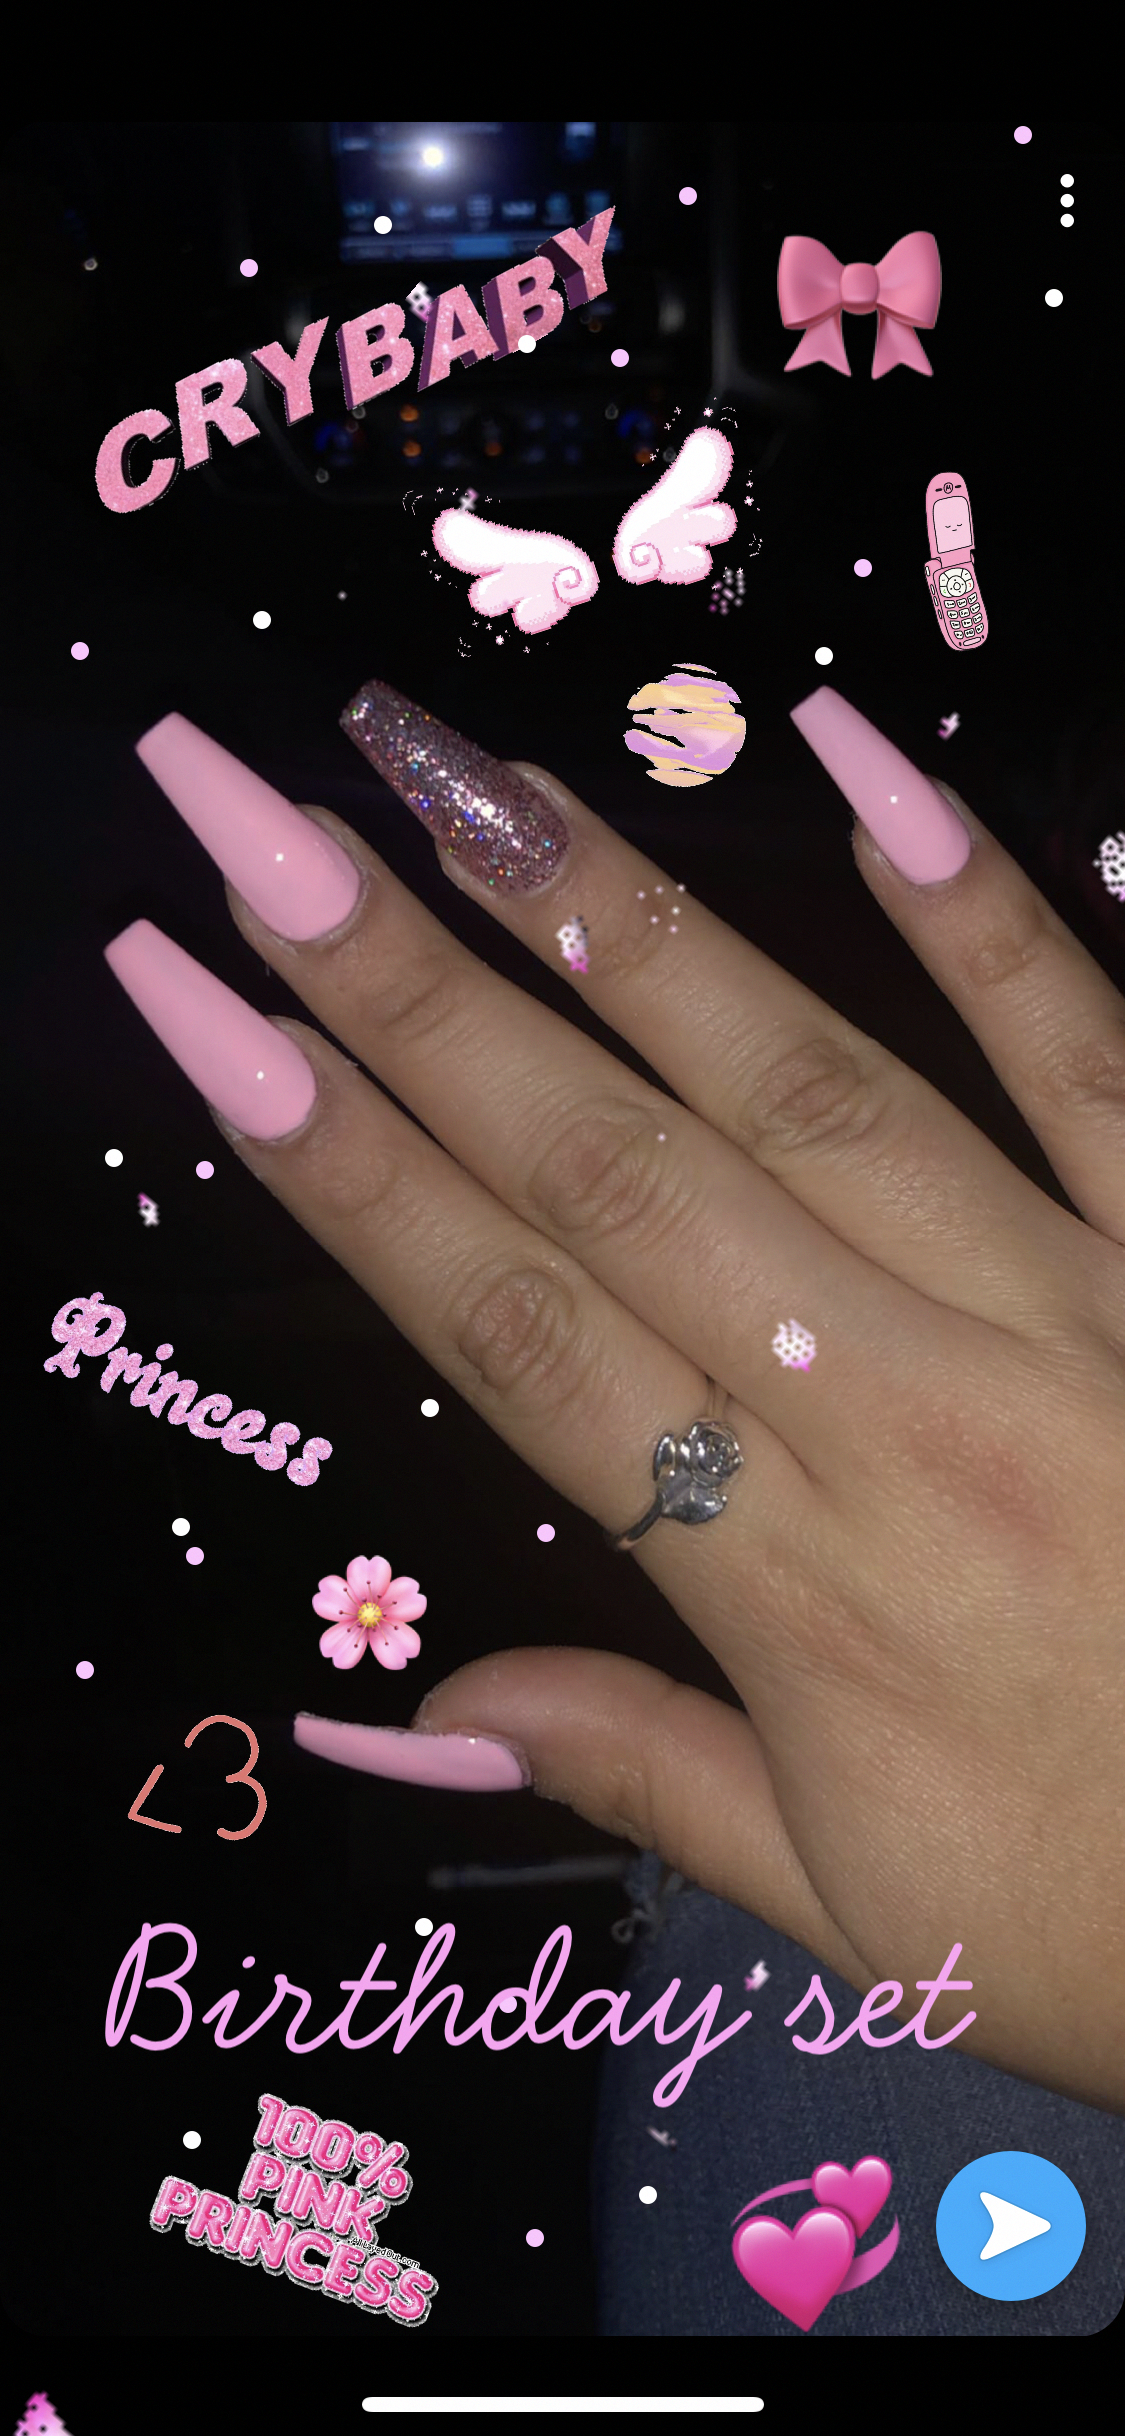 Buy Amazon Amzn To 2a9biwl My 18th Birthday Set Pink Acrylic Nails Glitter Coffin Baddi Acrylic Nails Coffin Pink Long Acrylic Nails Ombre Acrylic Nails